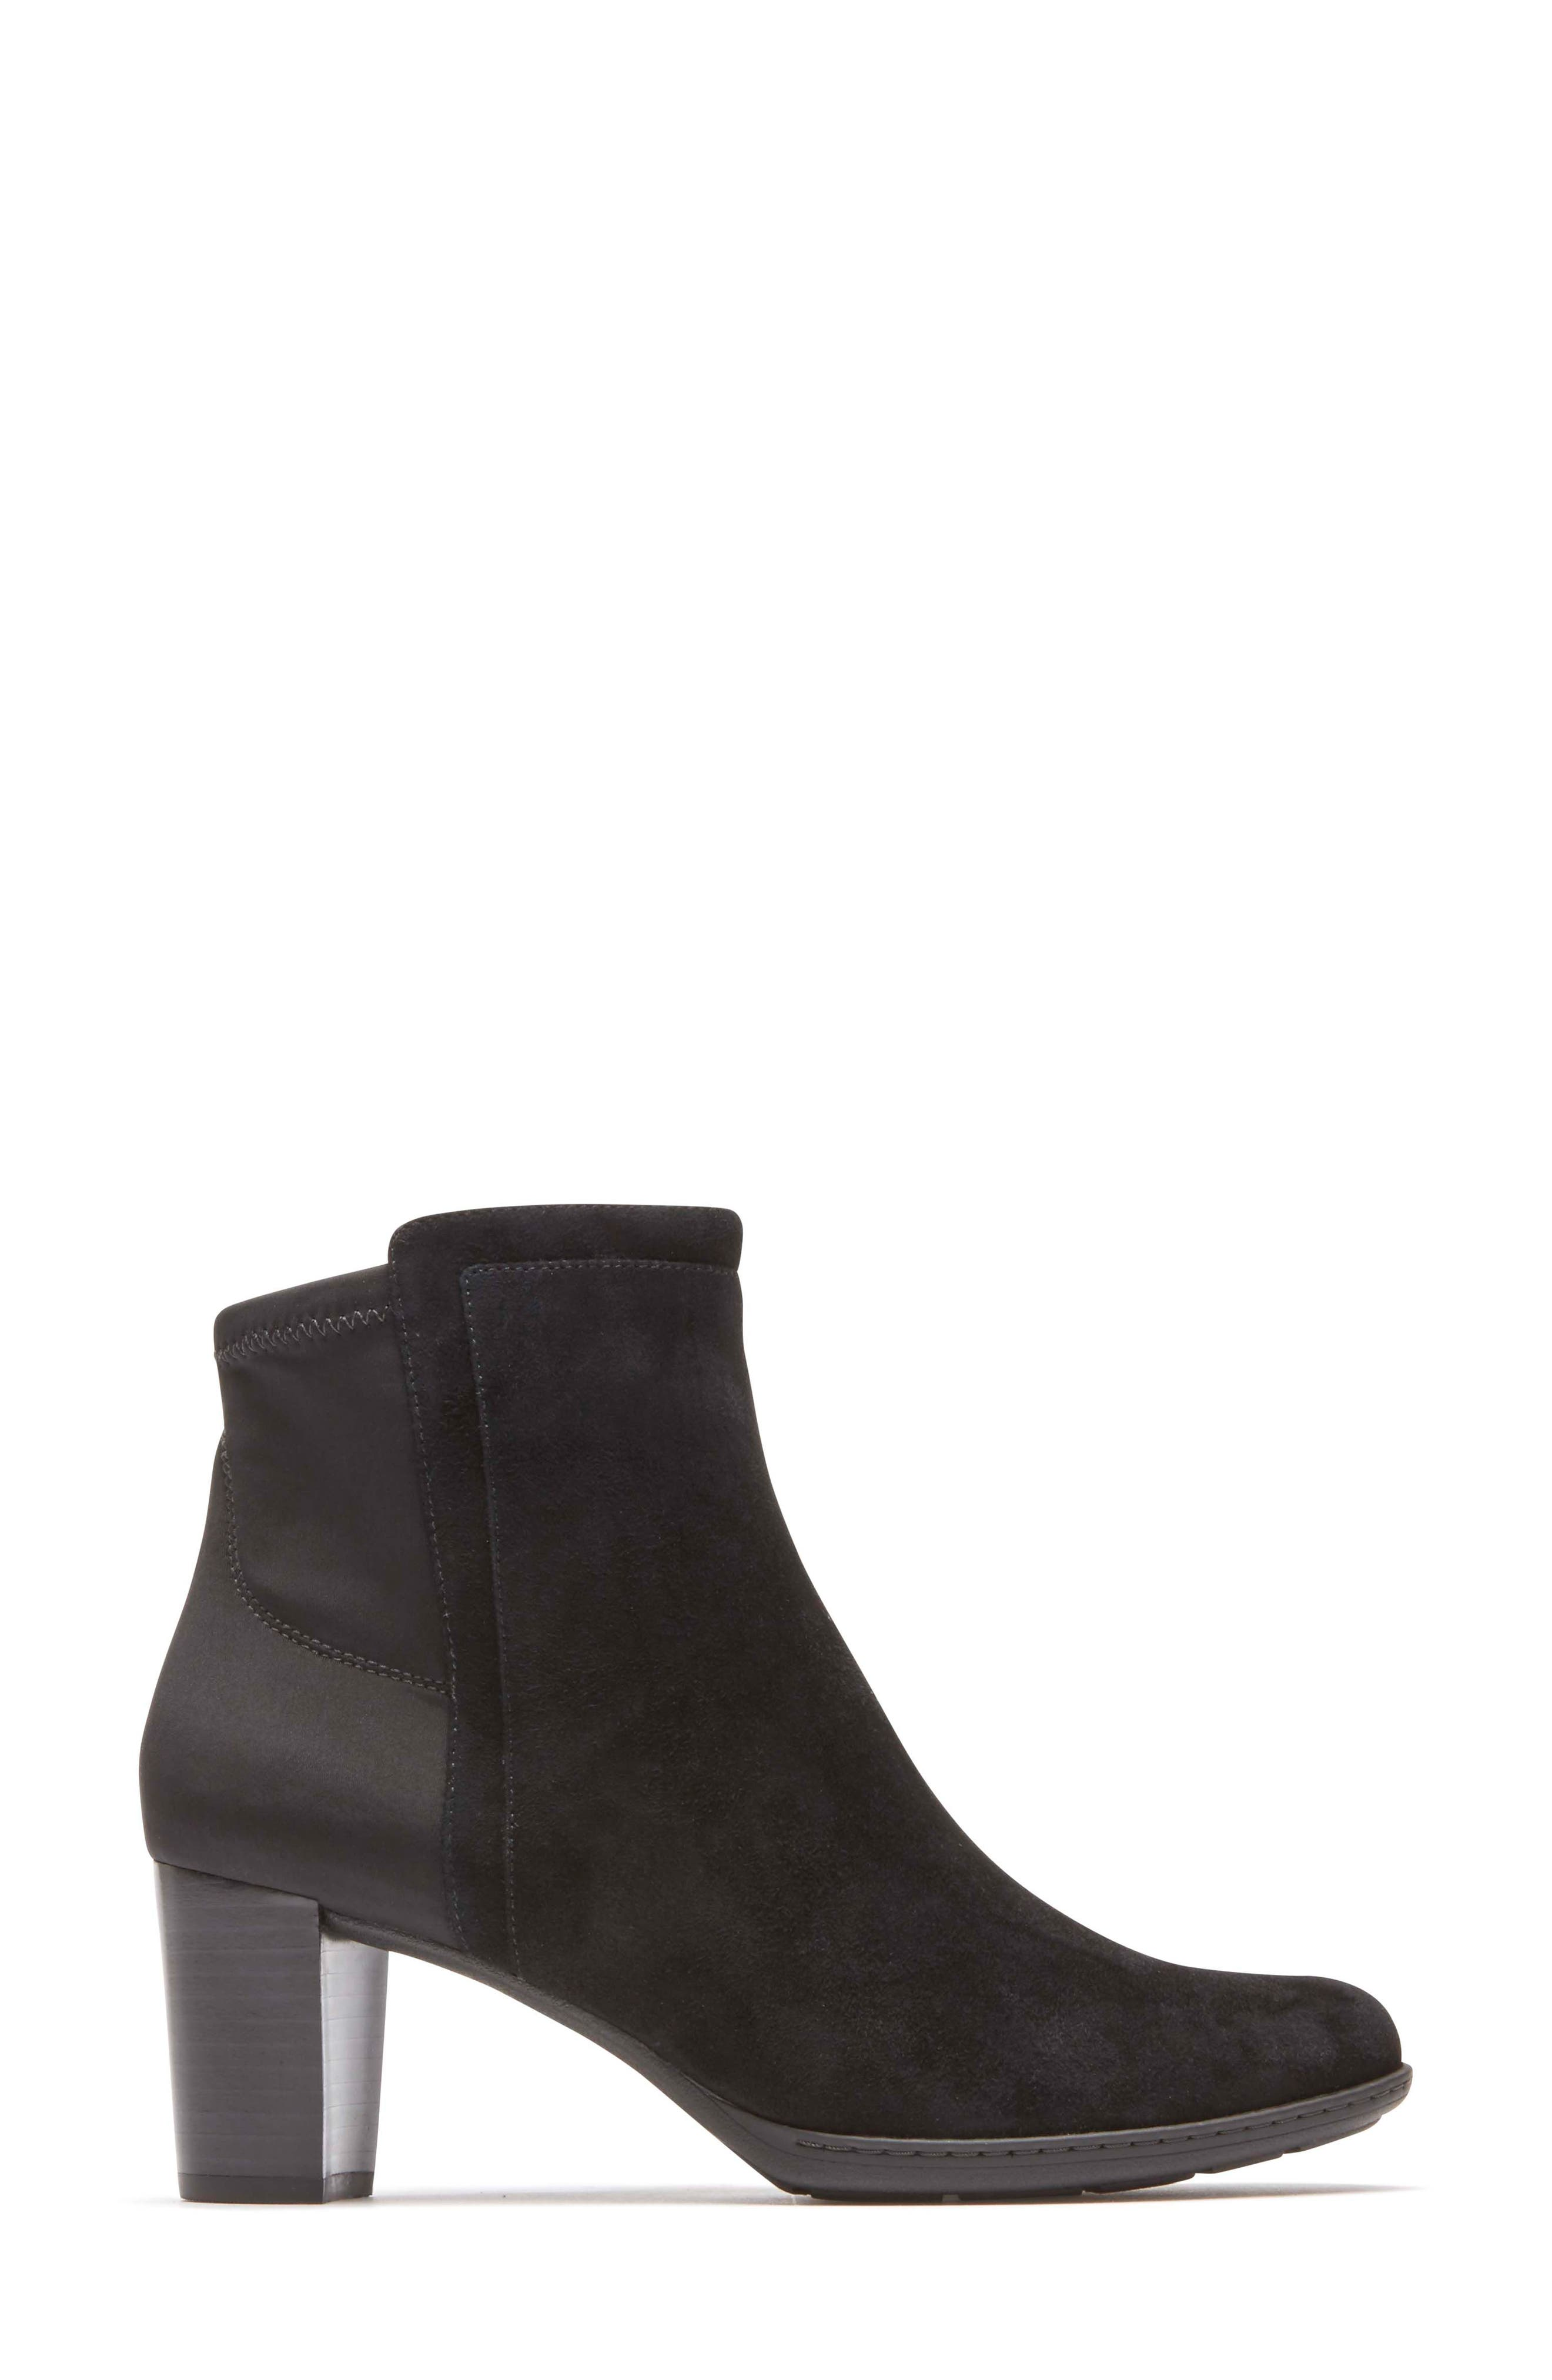 Chaya Bootie,                             Alternate thumbnail 3, color,                             Black Suede